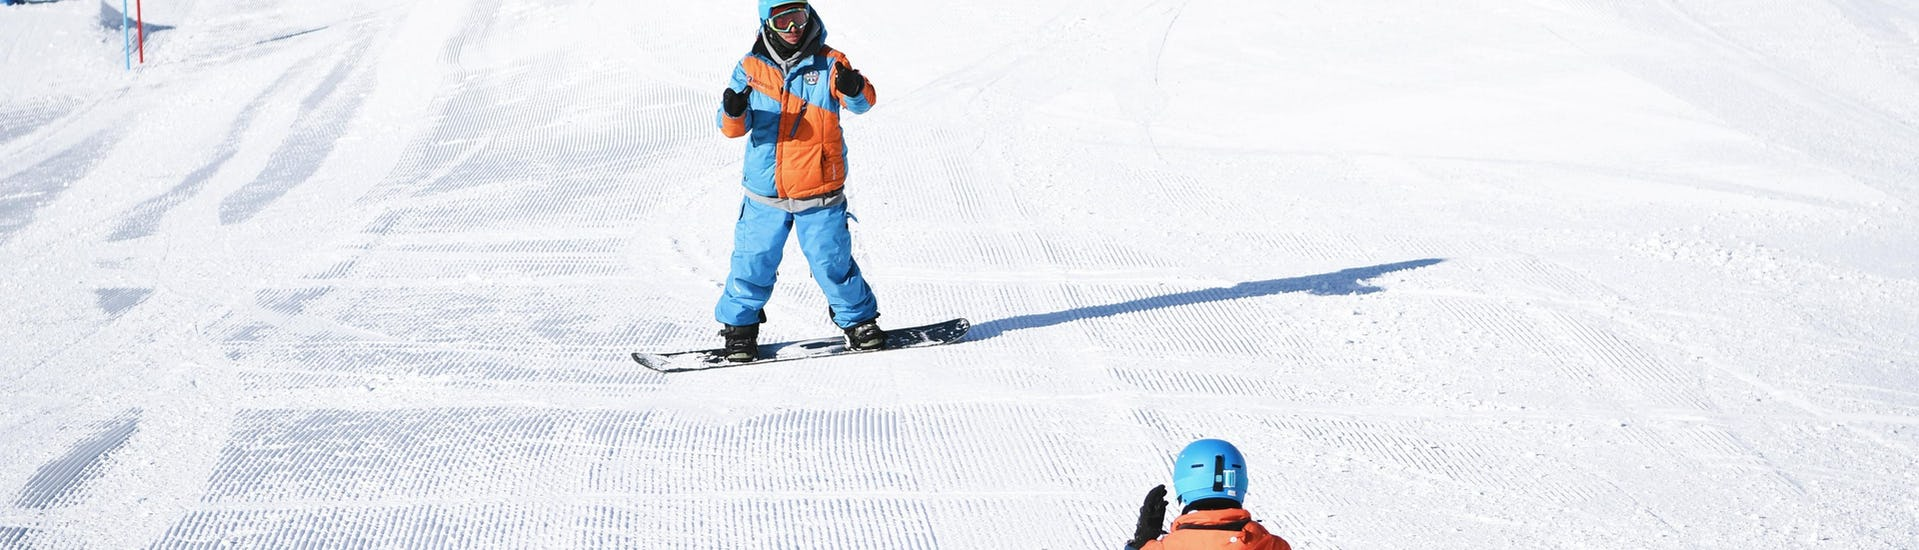 snowboarding-lessons-for-kids-adults-beginner-yes-academy-sestriere-hero